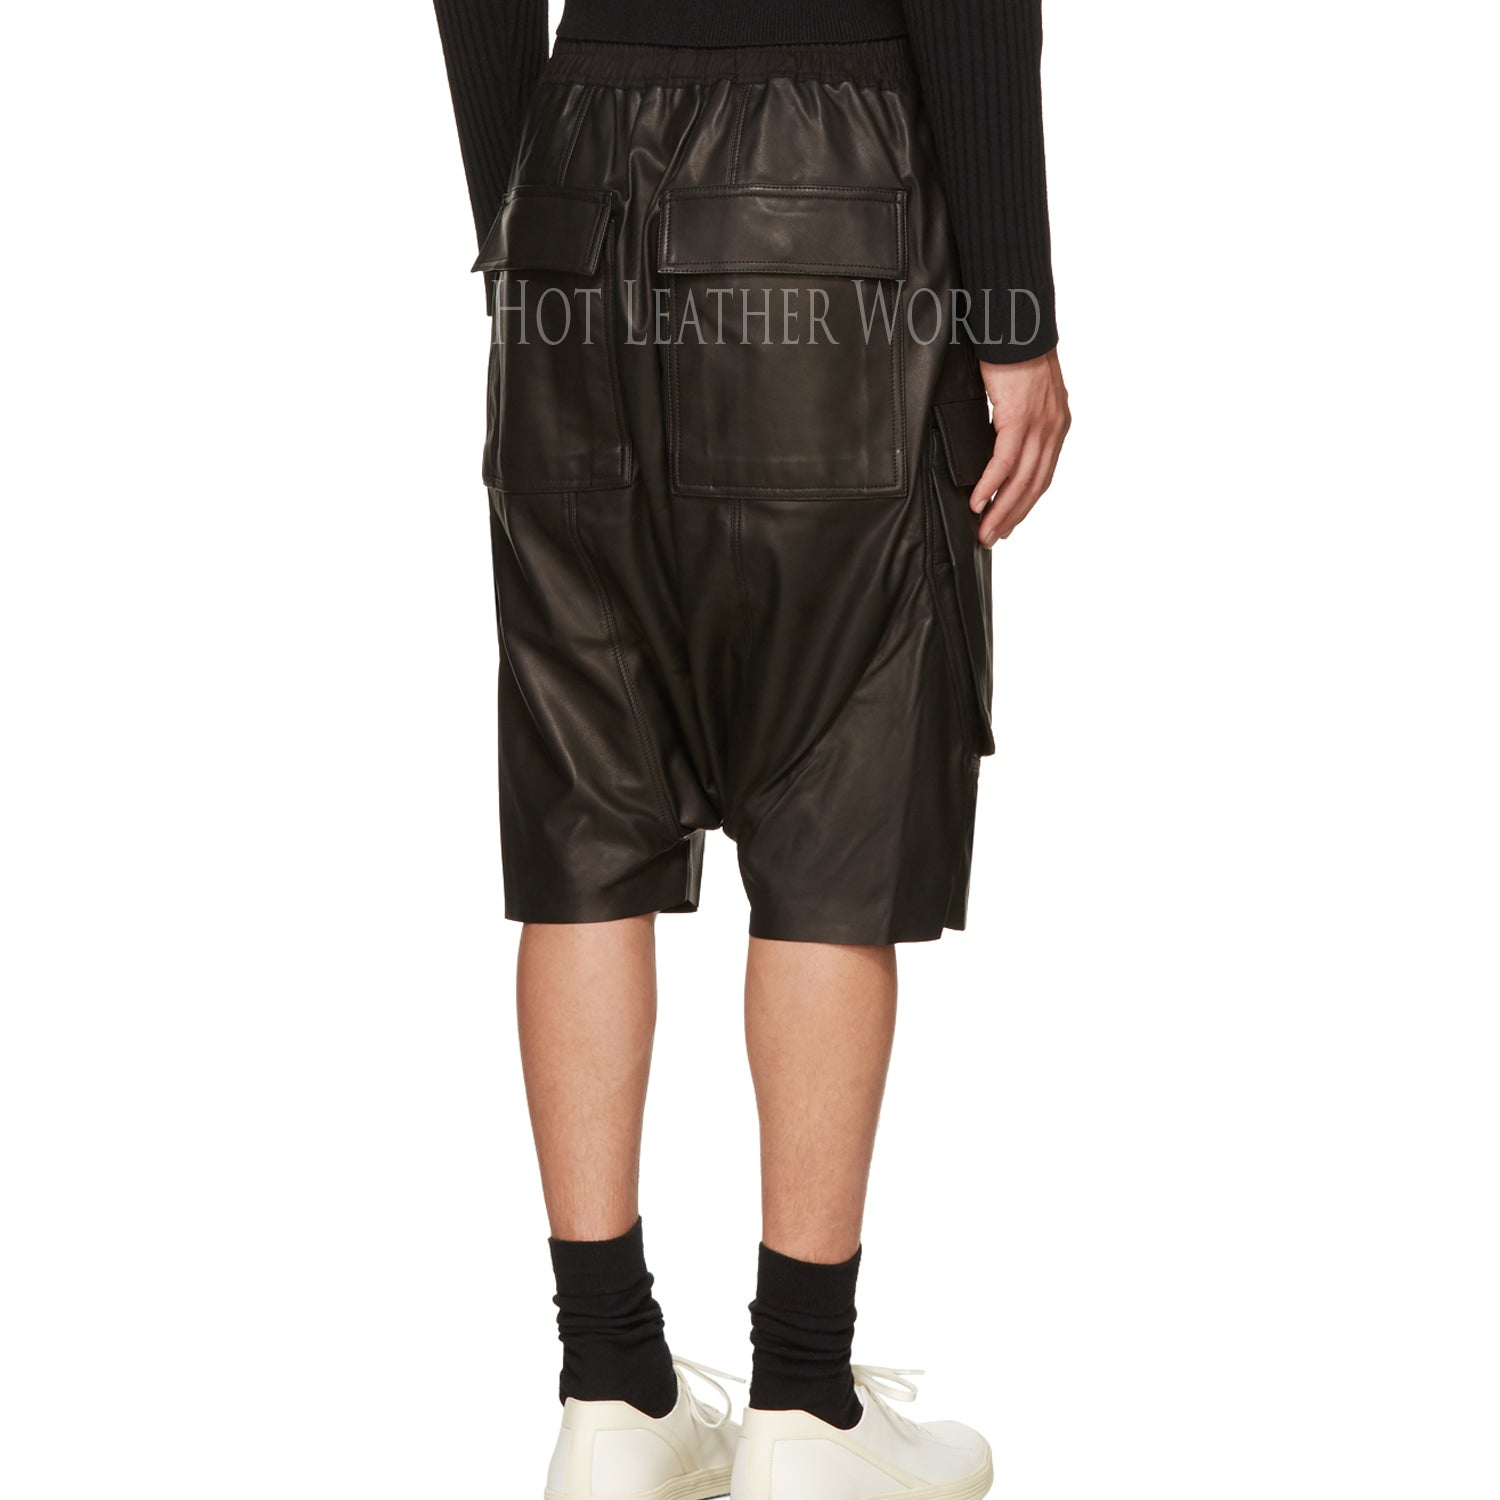 BLACK LEATHER CARGO SHORTS -  HOTLEATHERWORLD